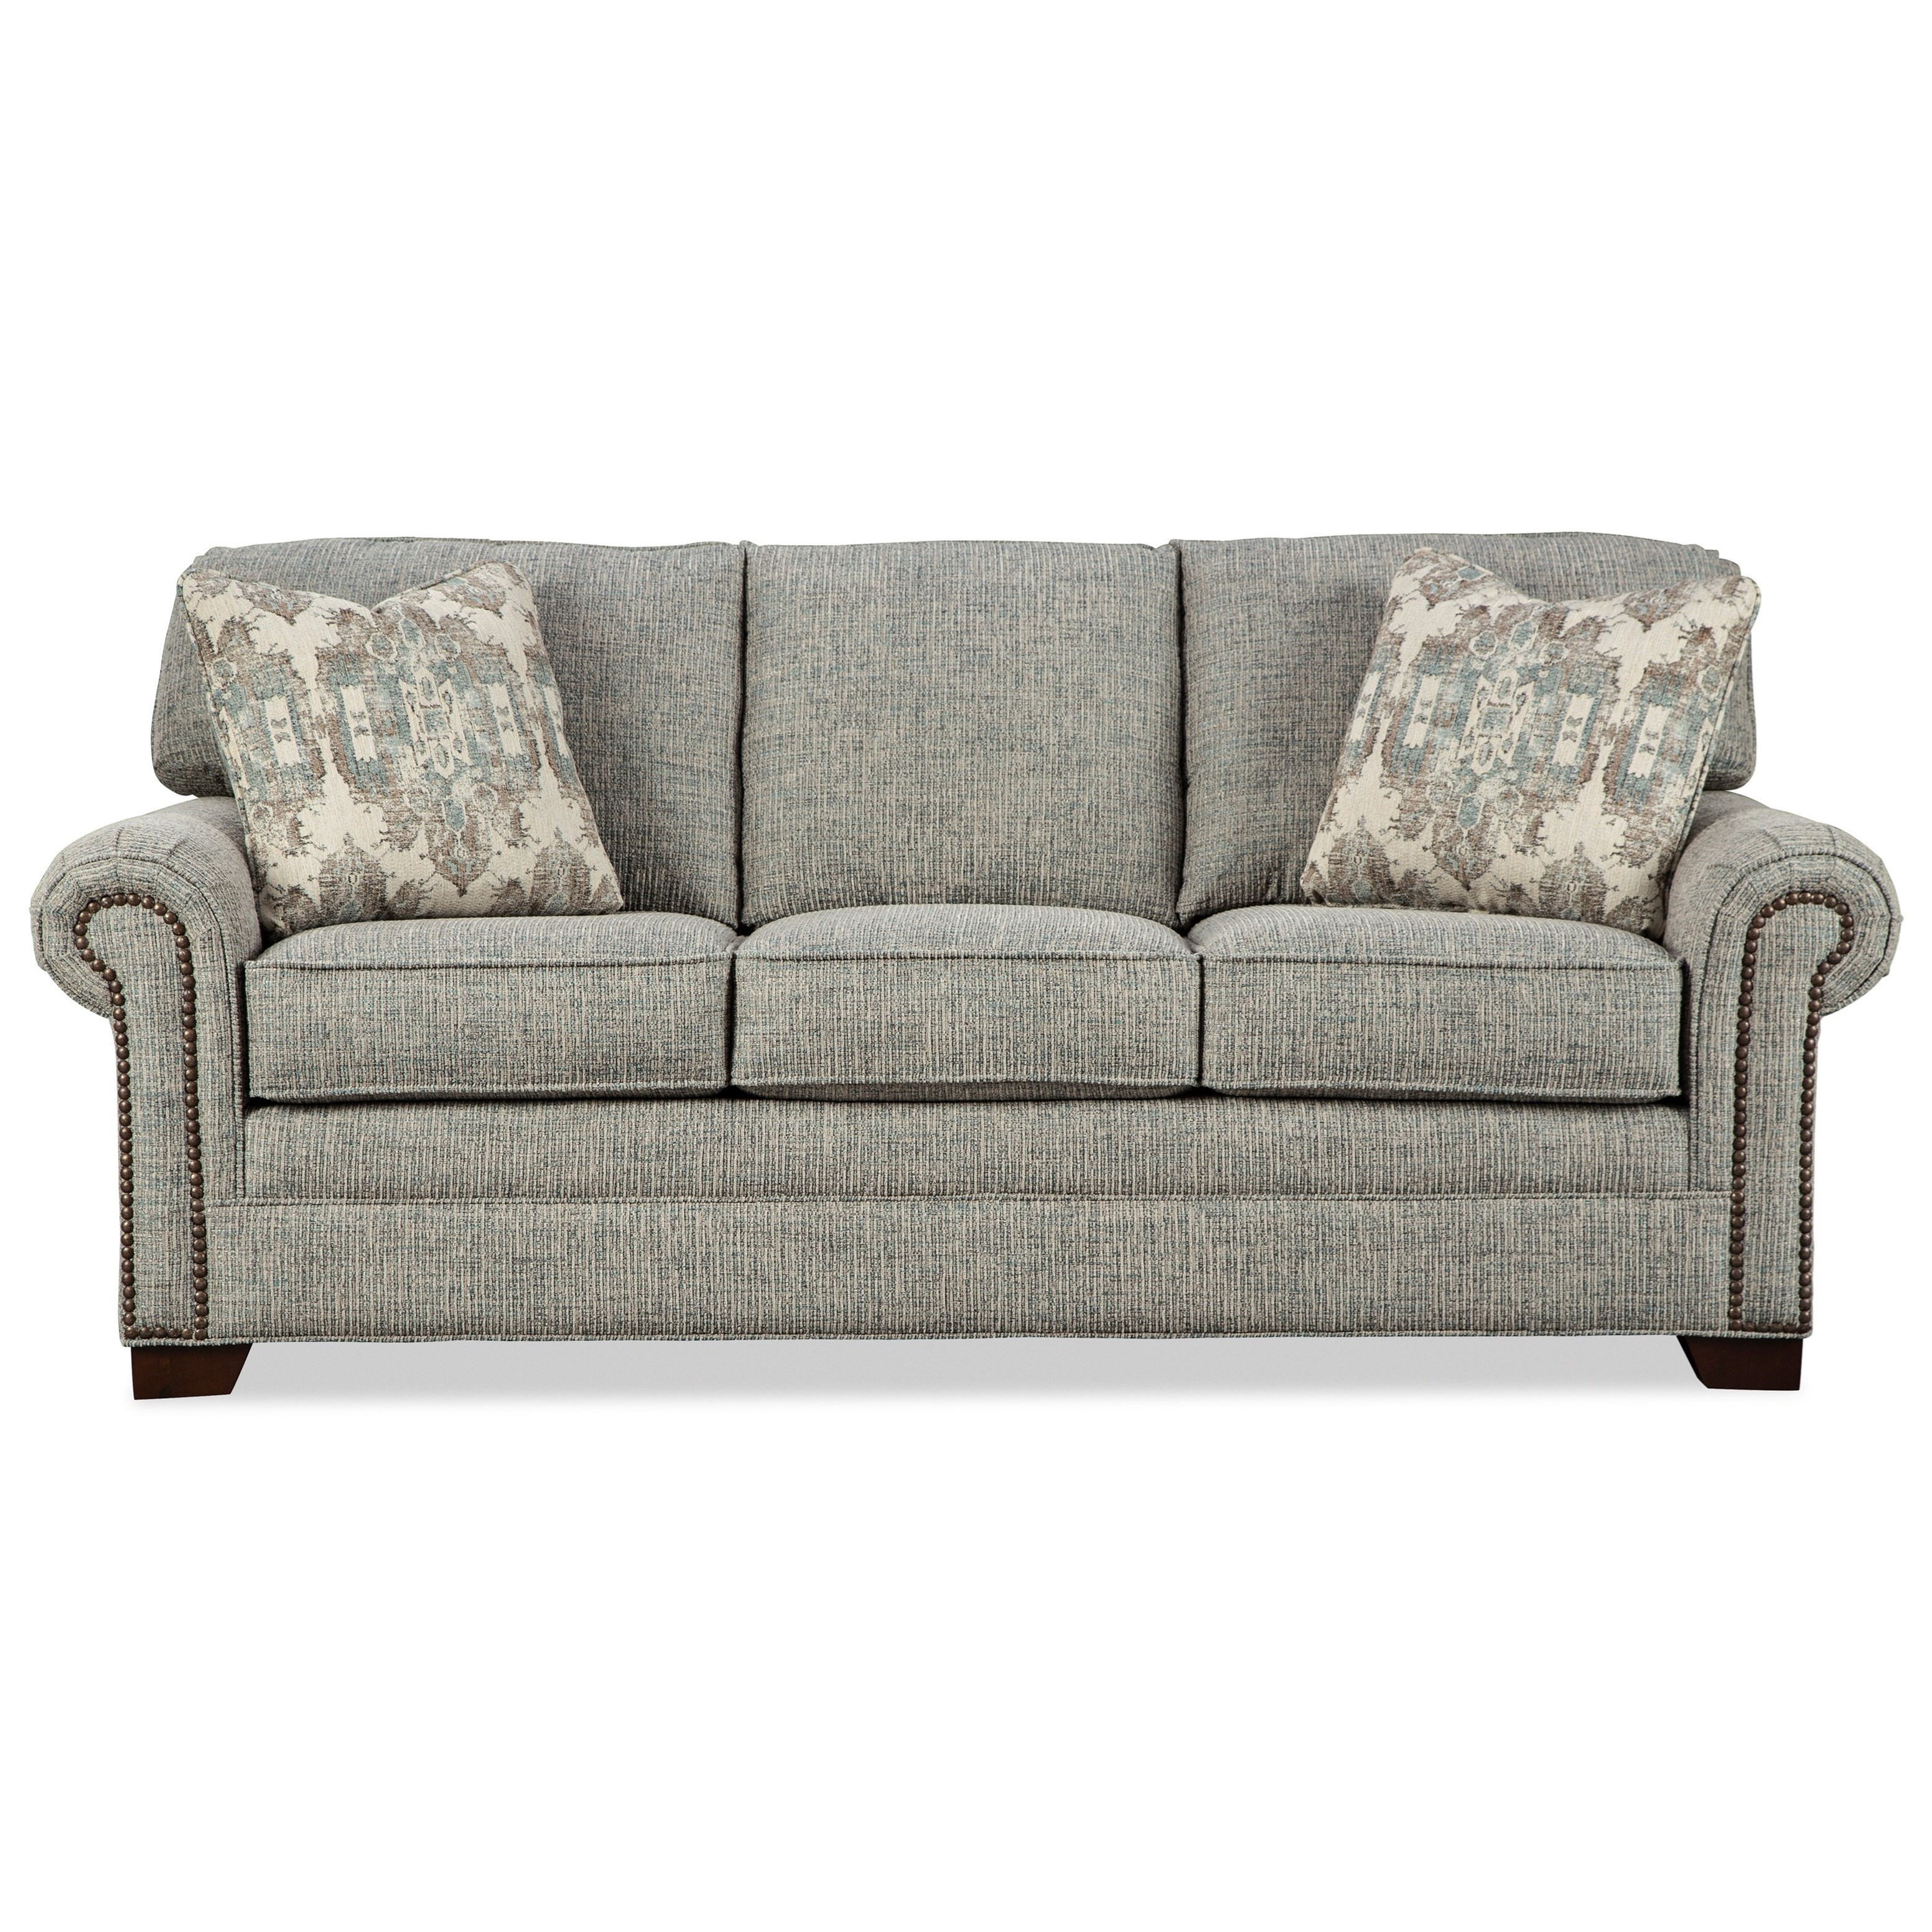 7565 Queen Sleeper Sofa with Memory Foam Mattress by Craftmaster at Jacksonville Furniture Mart